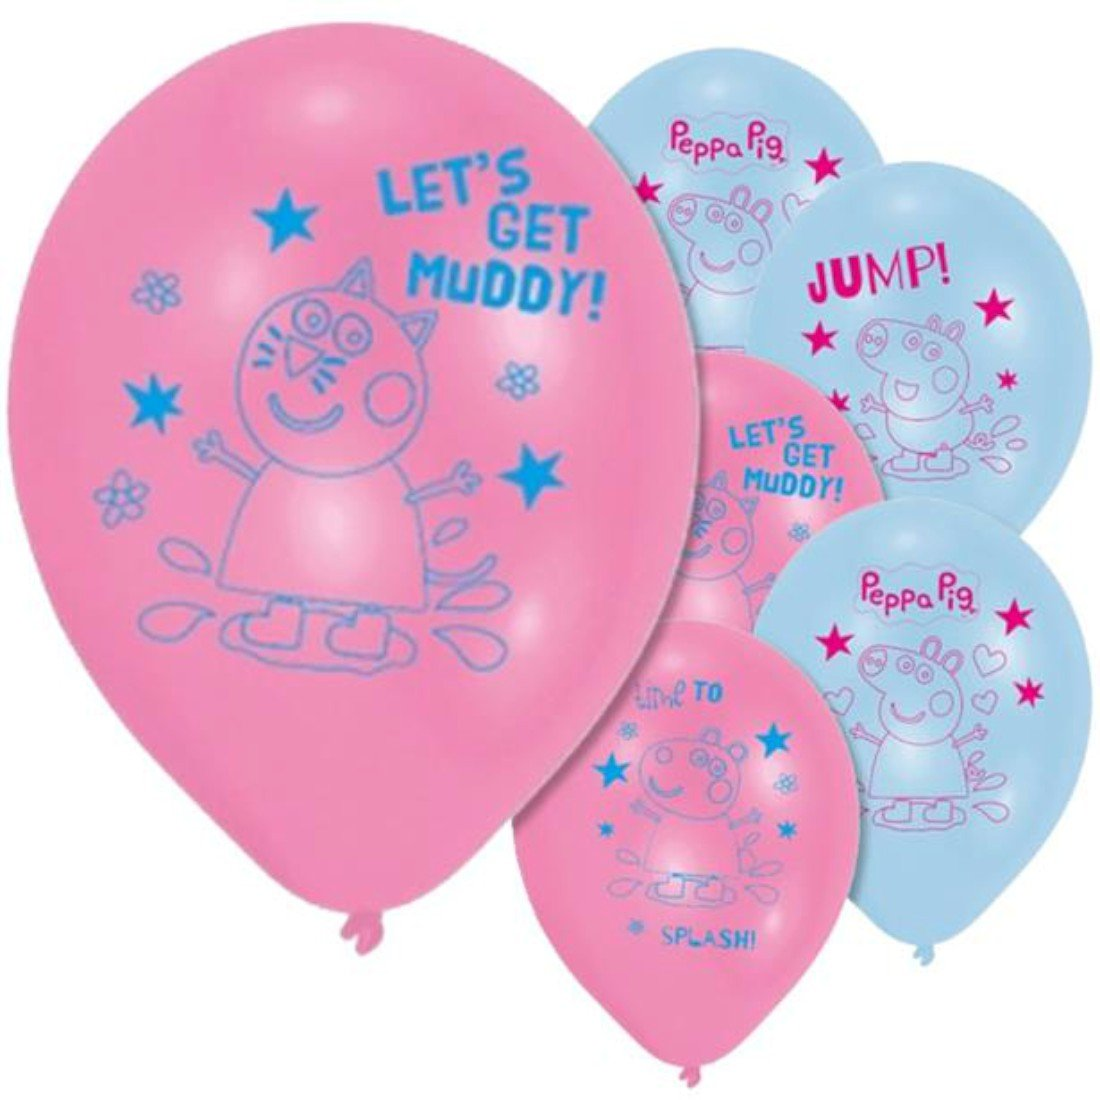 PEPPA PIG 11 Story Latex Balloons Pink & Blue (6 Pack) Amscan